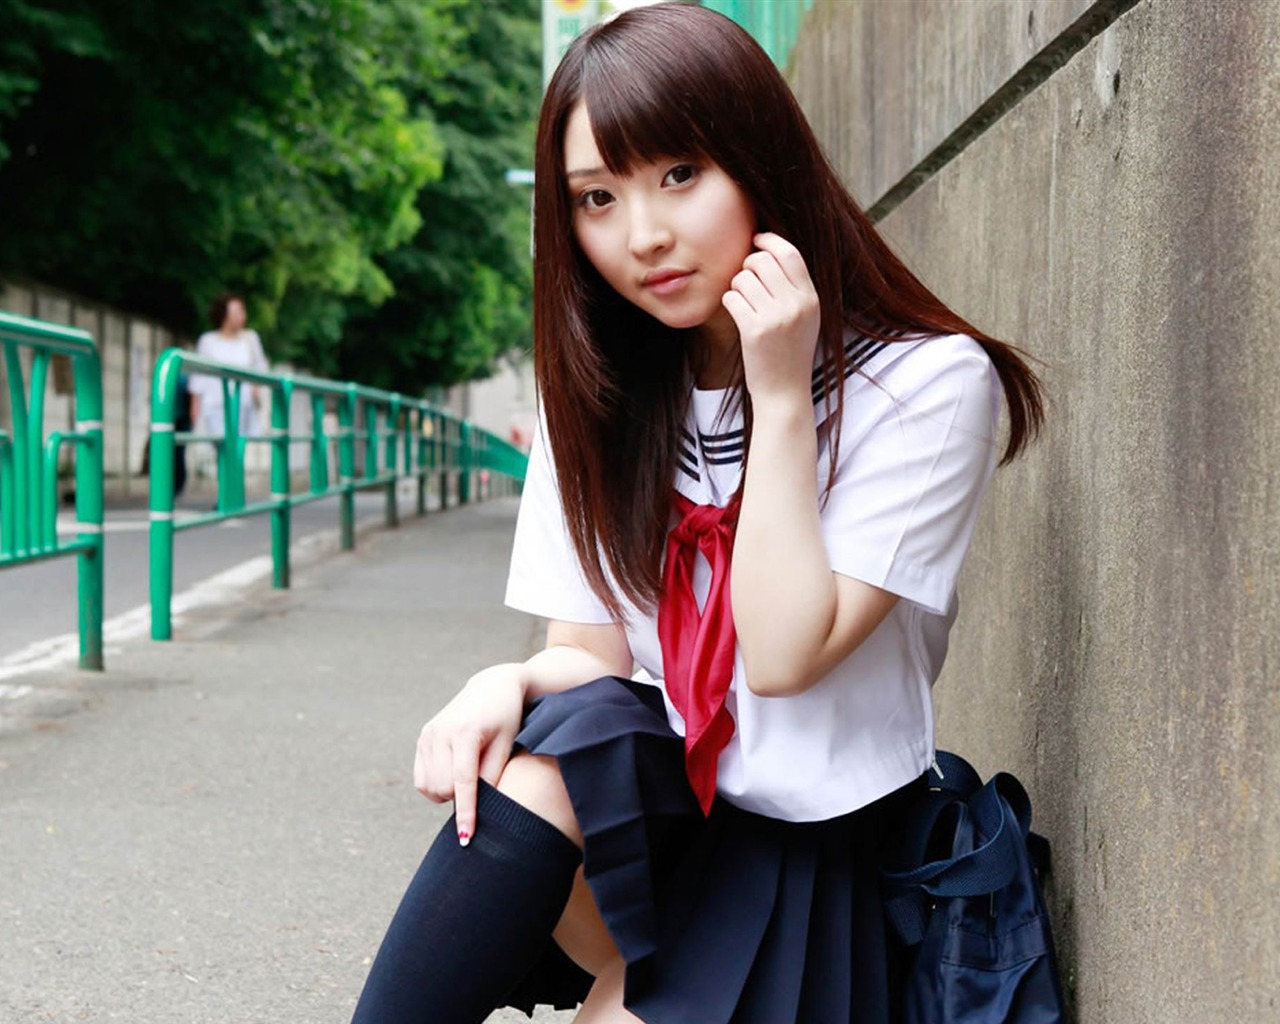 - Asian schoolgirl wallpaper ...